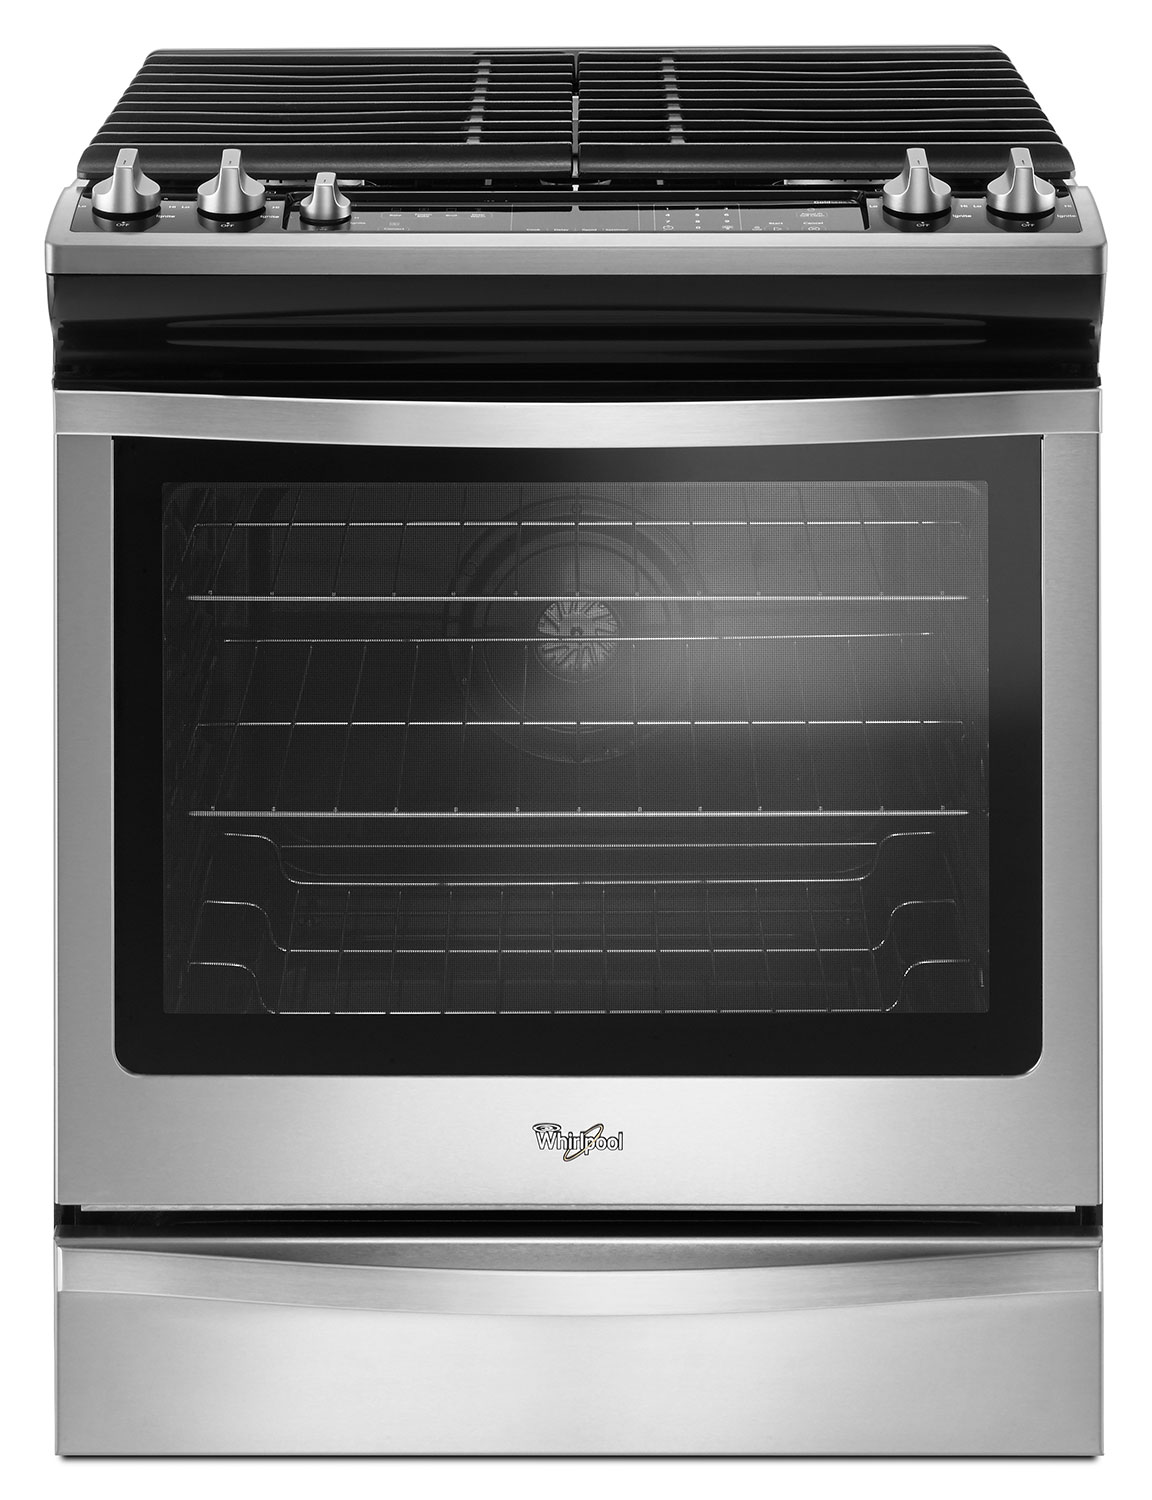 Cooking Products - Whirlpool 5.8 Cu. Ft. Slide-In Gas Range – WEG745H0FS